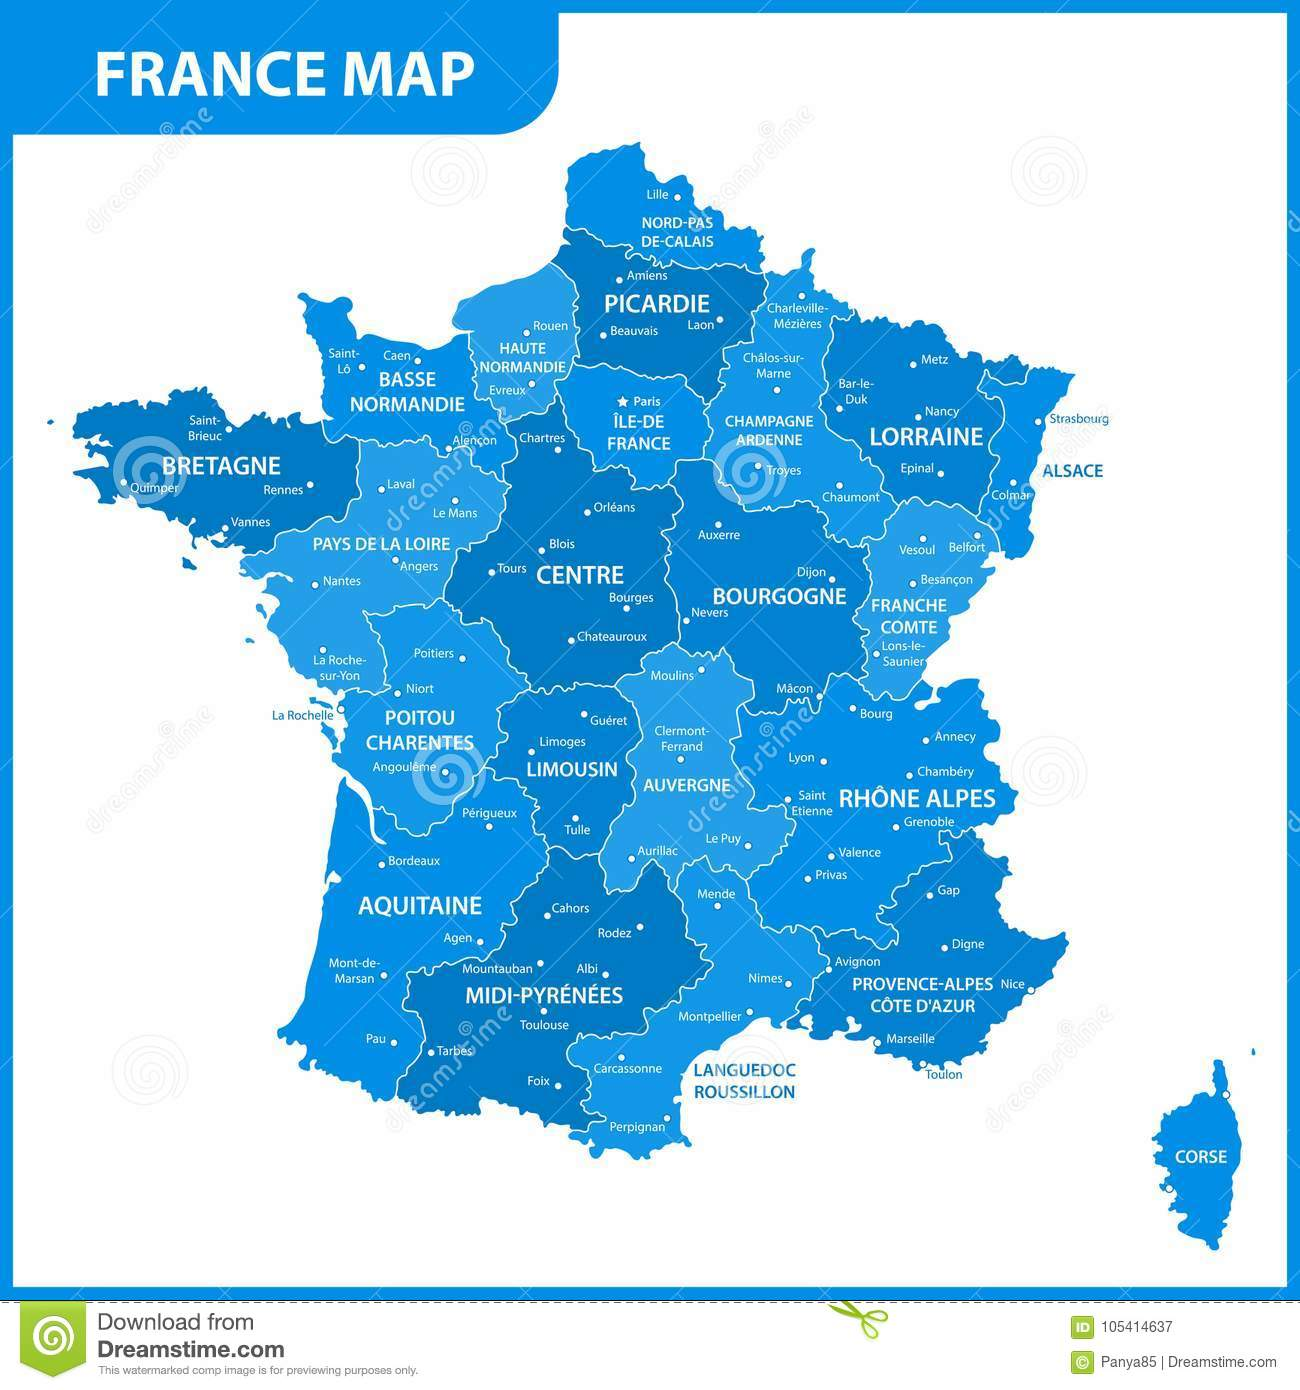 Map Of France Lille Region.The Detailed Map Of The France With Regions Or States And